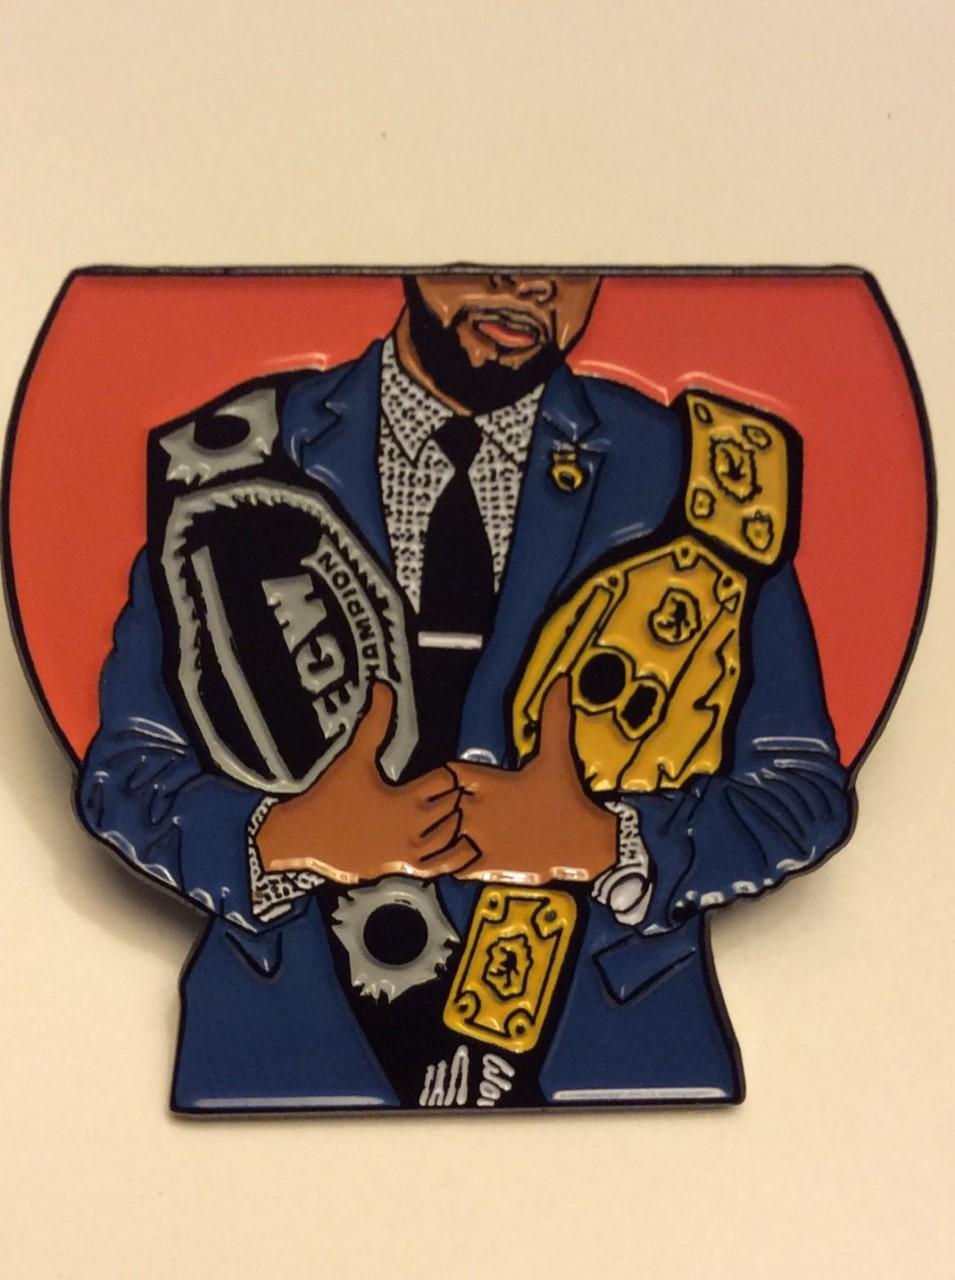 Your boy has been immortalized as a lapel pin.